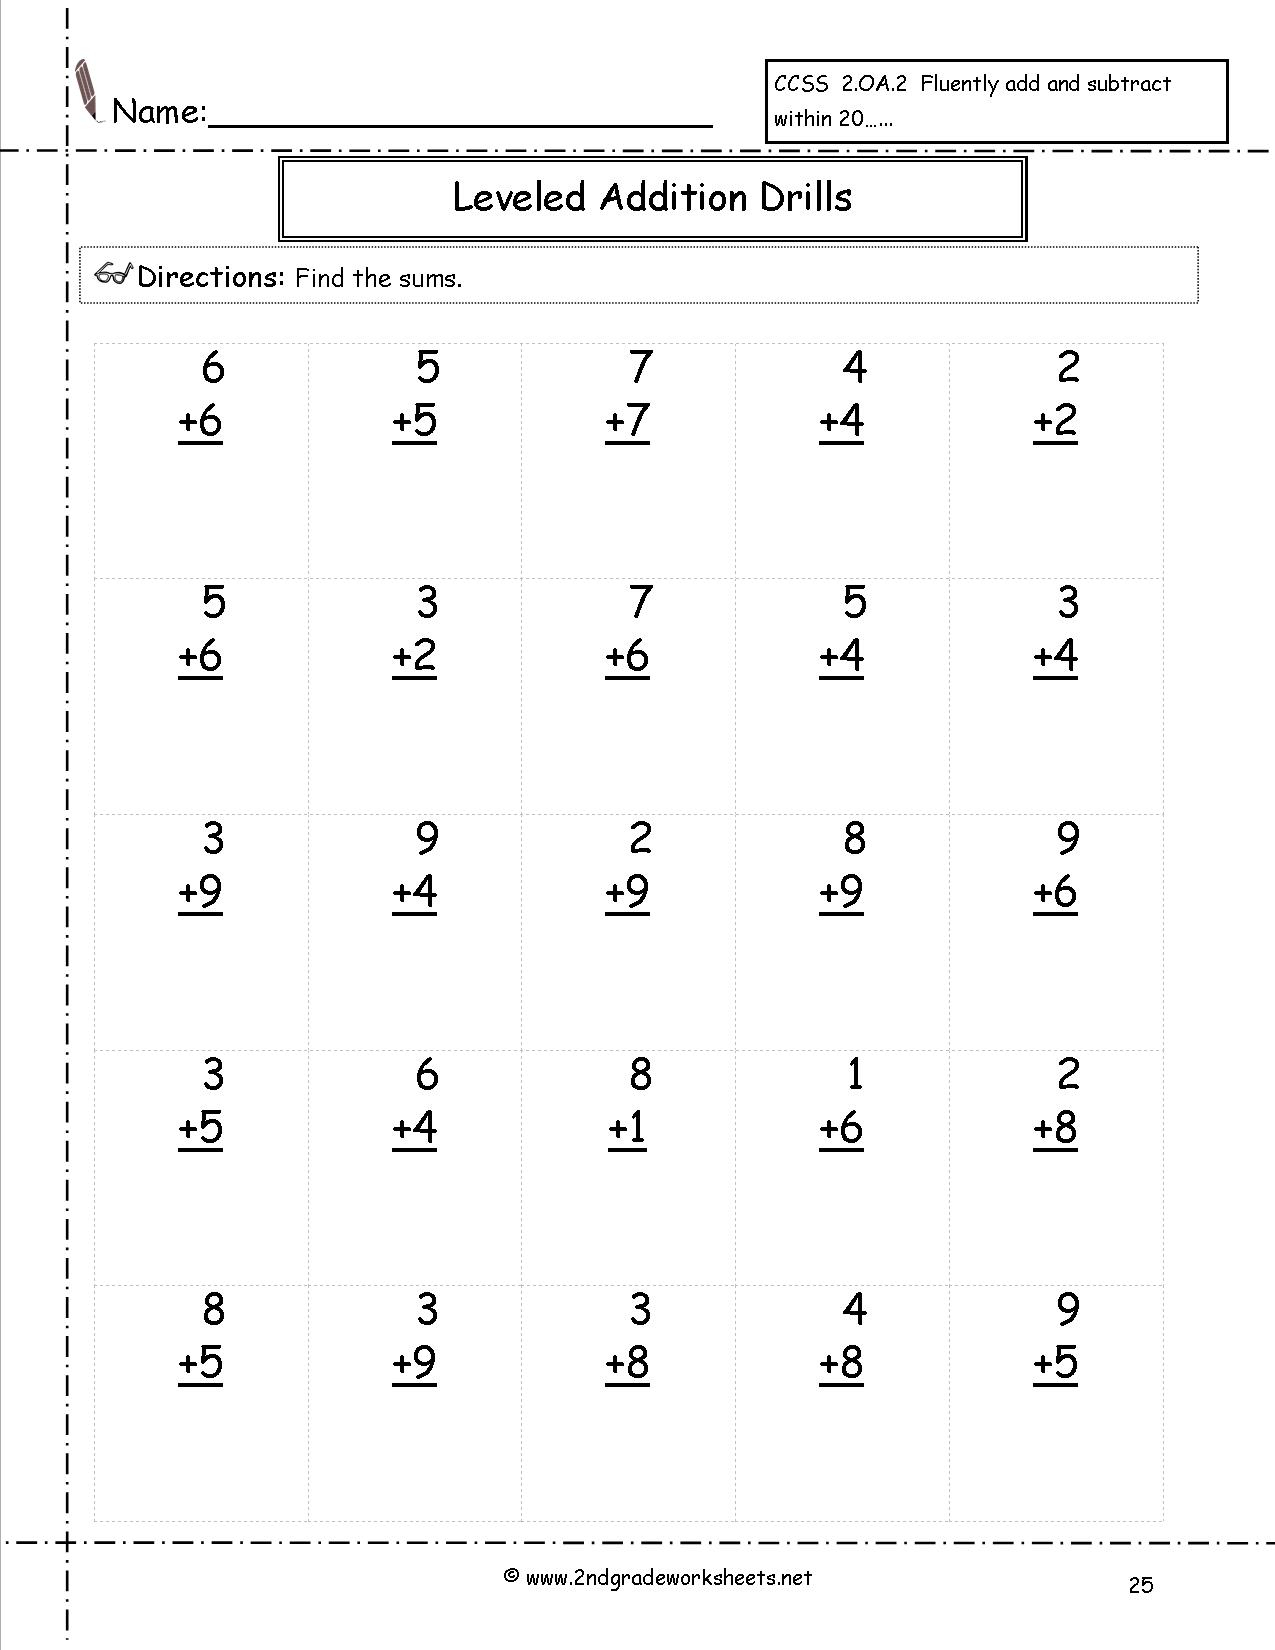 Free Math Worksheets And Printouts | Year 2 Maths Worksheets Free Printable